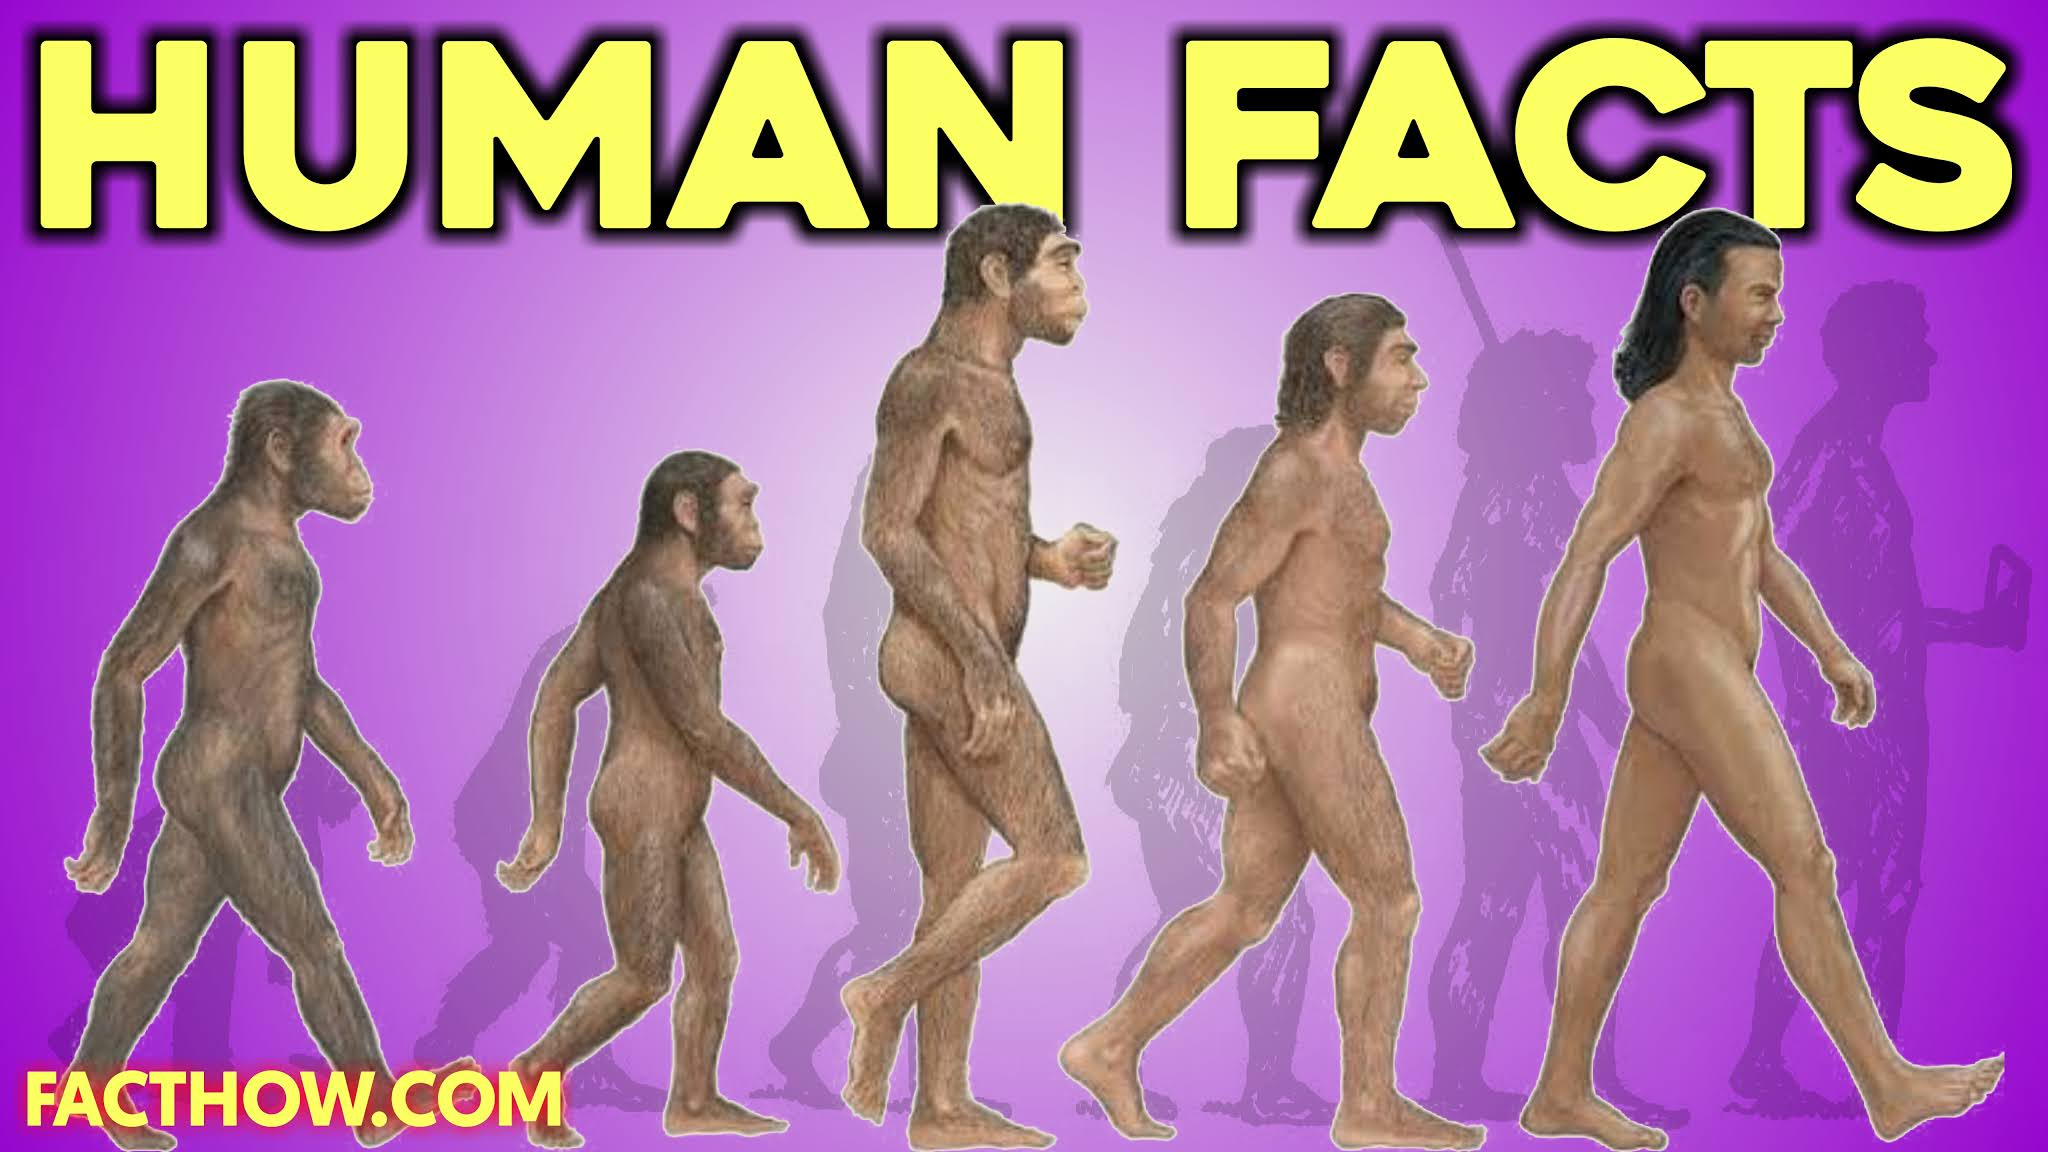 Human body power in Hindi Psychological Facts About Body Language in Hindi How human body works in Hindi Amazing facts about human body parts Human Psychology facts in Hindi Biology Human body in Hindi Body ki jankari Human Science in Hindi